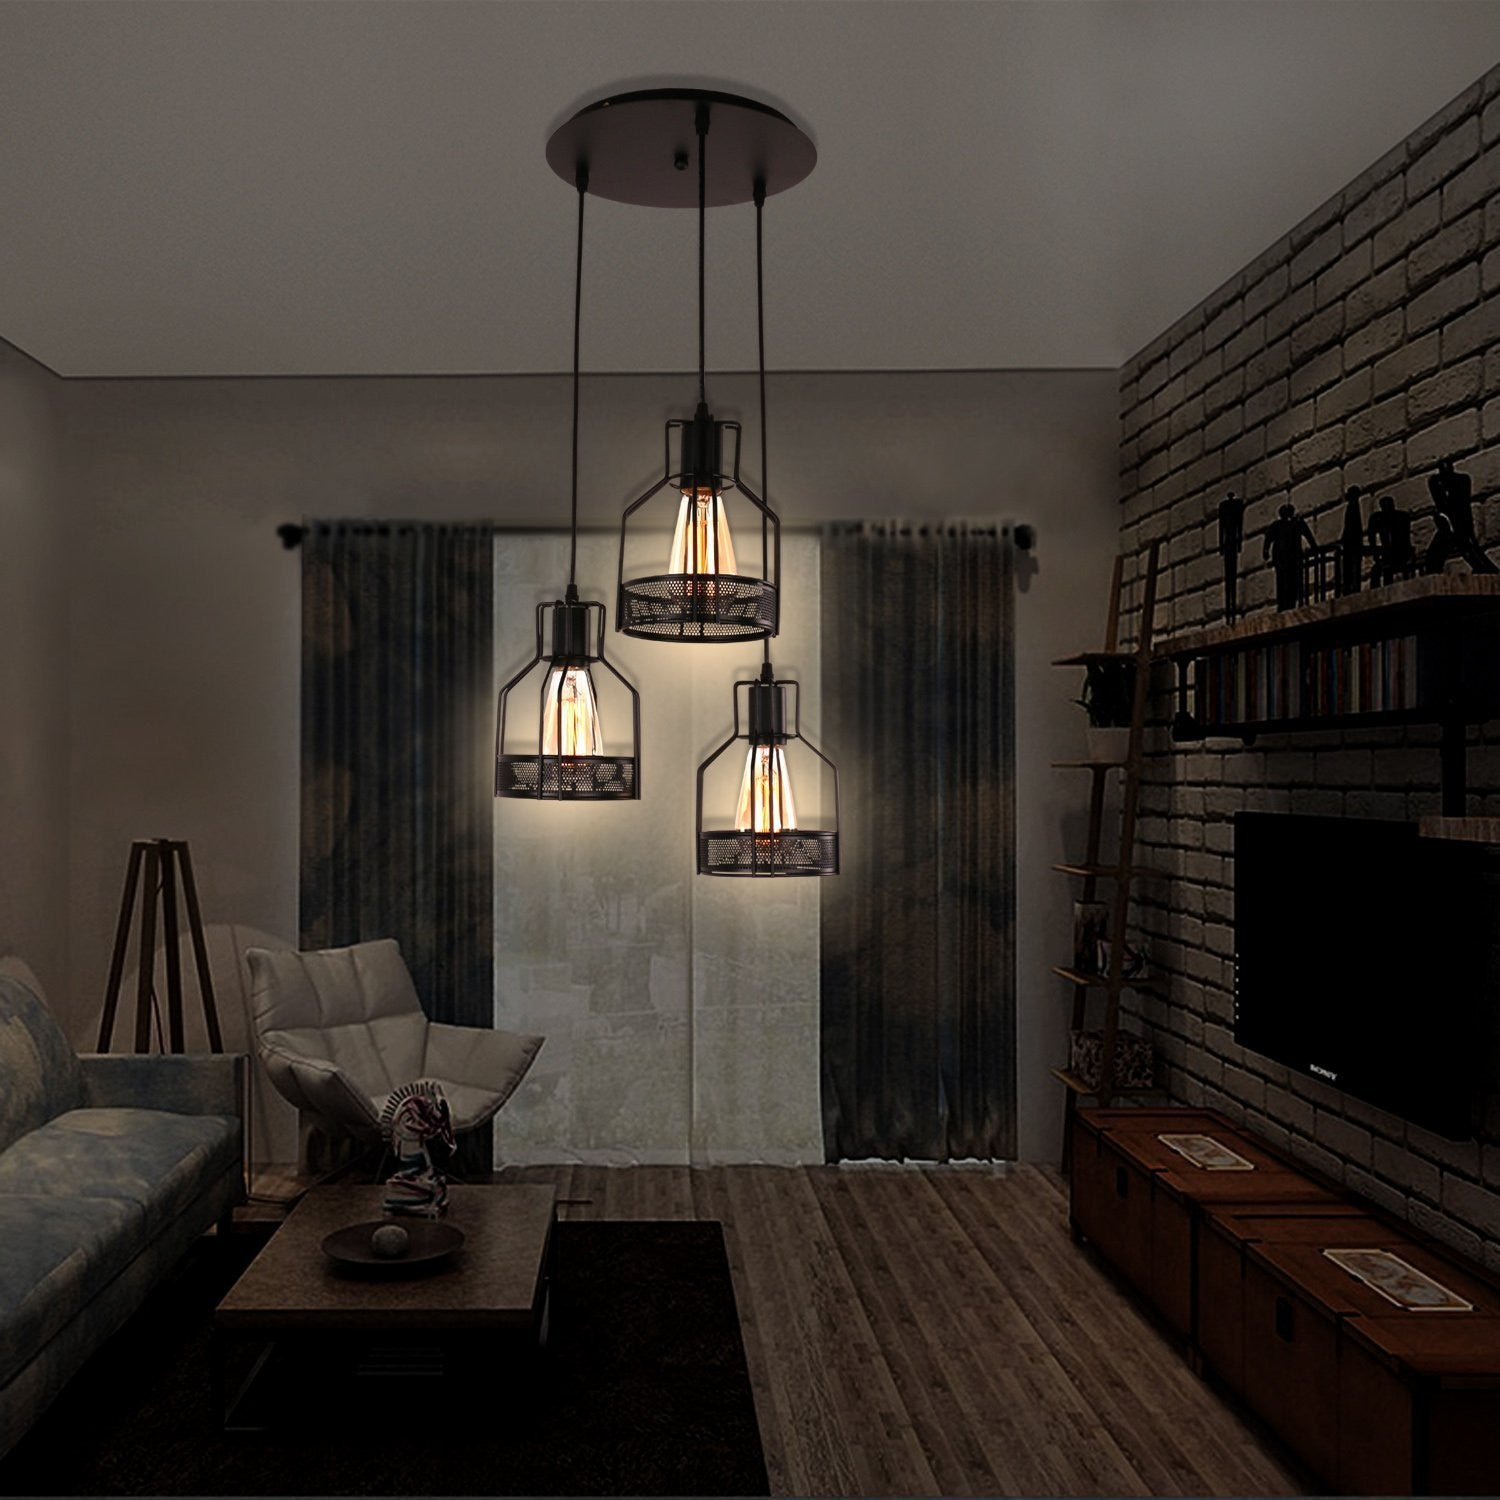 Unitary brand rustic black metal cage shade dining room pendant unitary brand rustic black metal cage shade dining room pendant light with 3 e26 bulb sockets 120w painted finish mozeypictures Choice Image